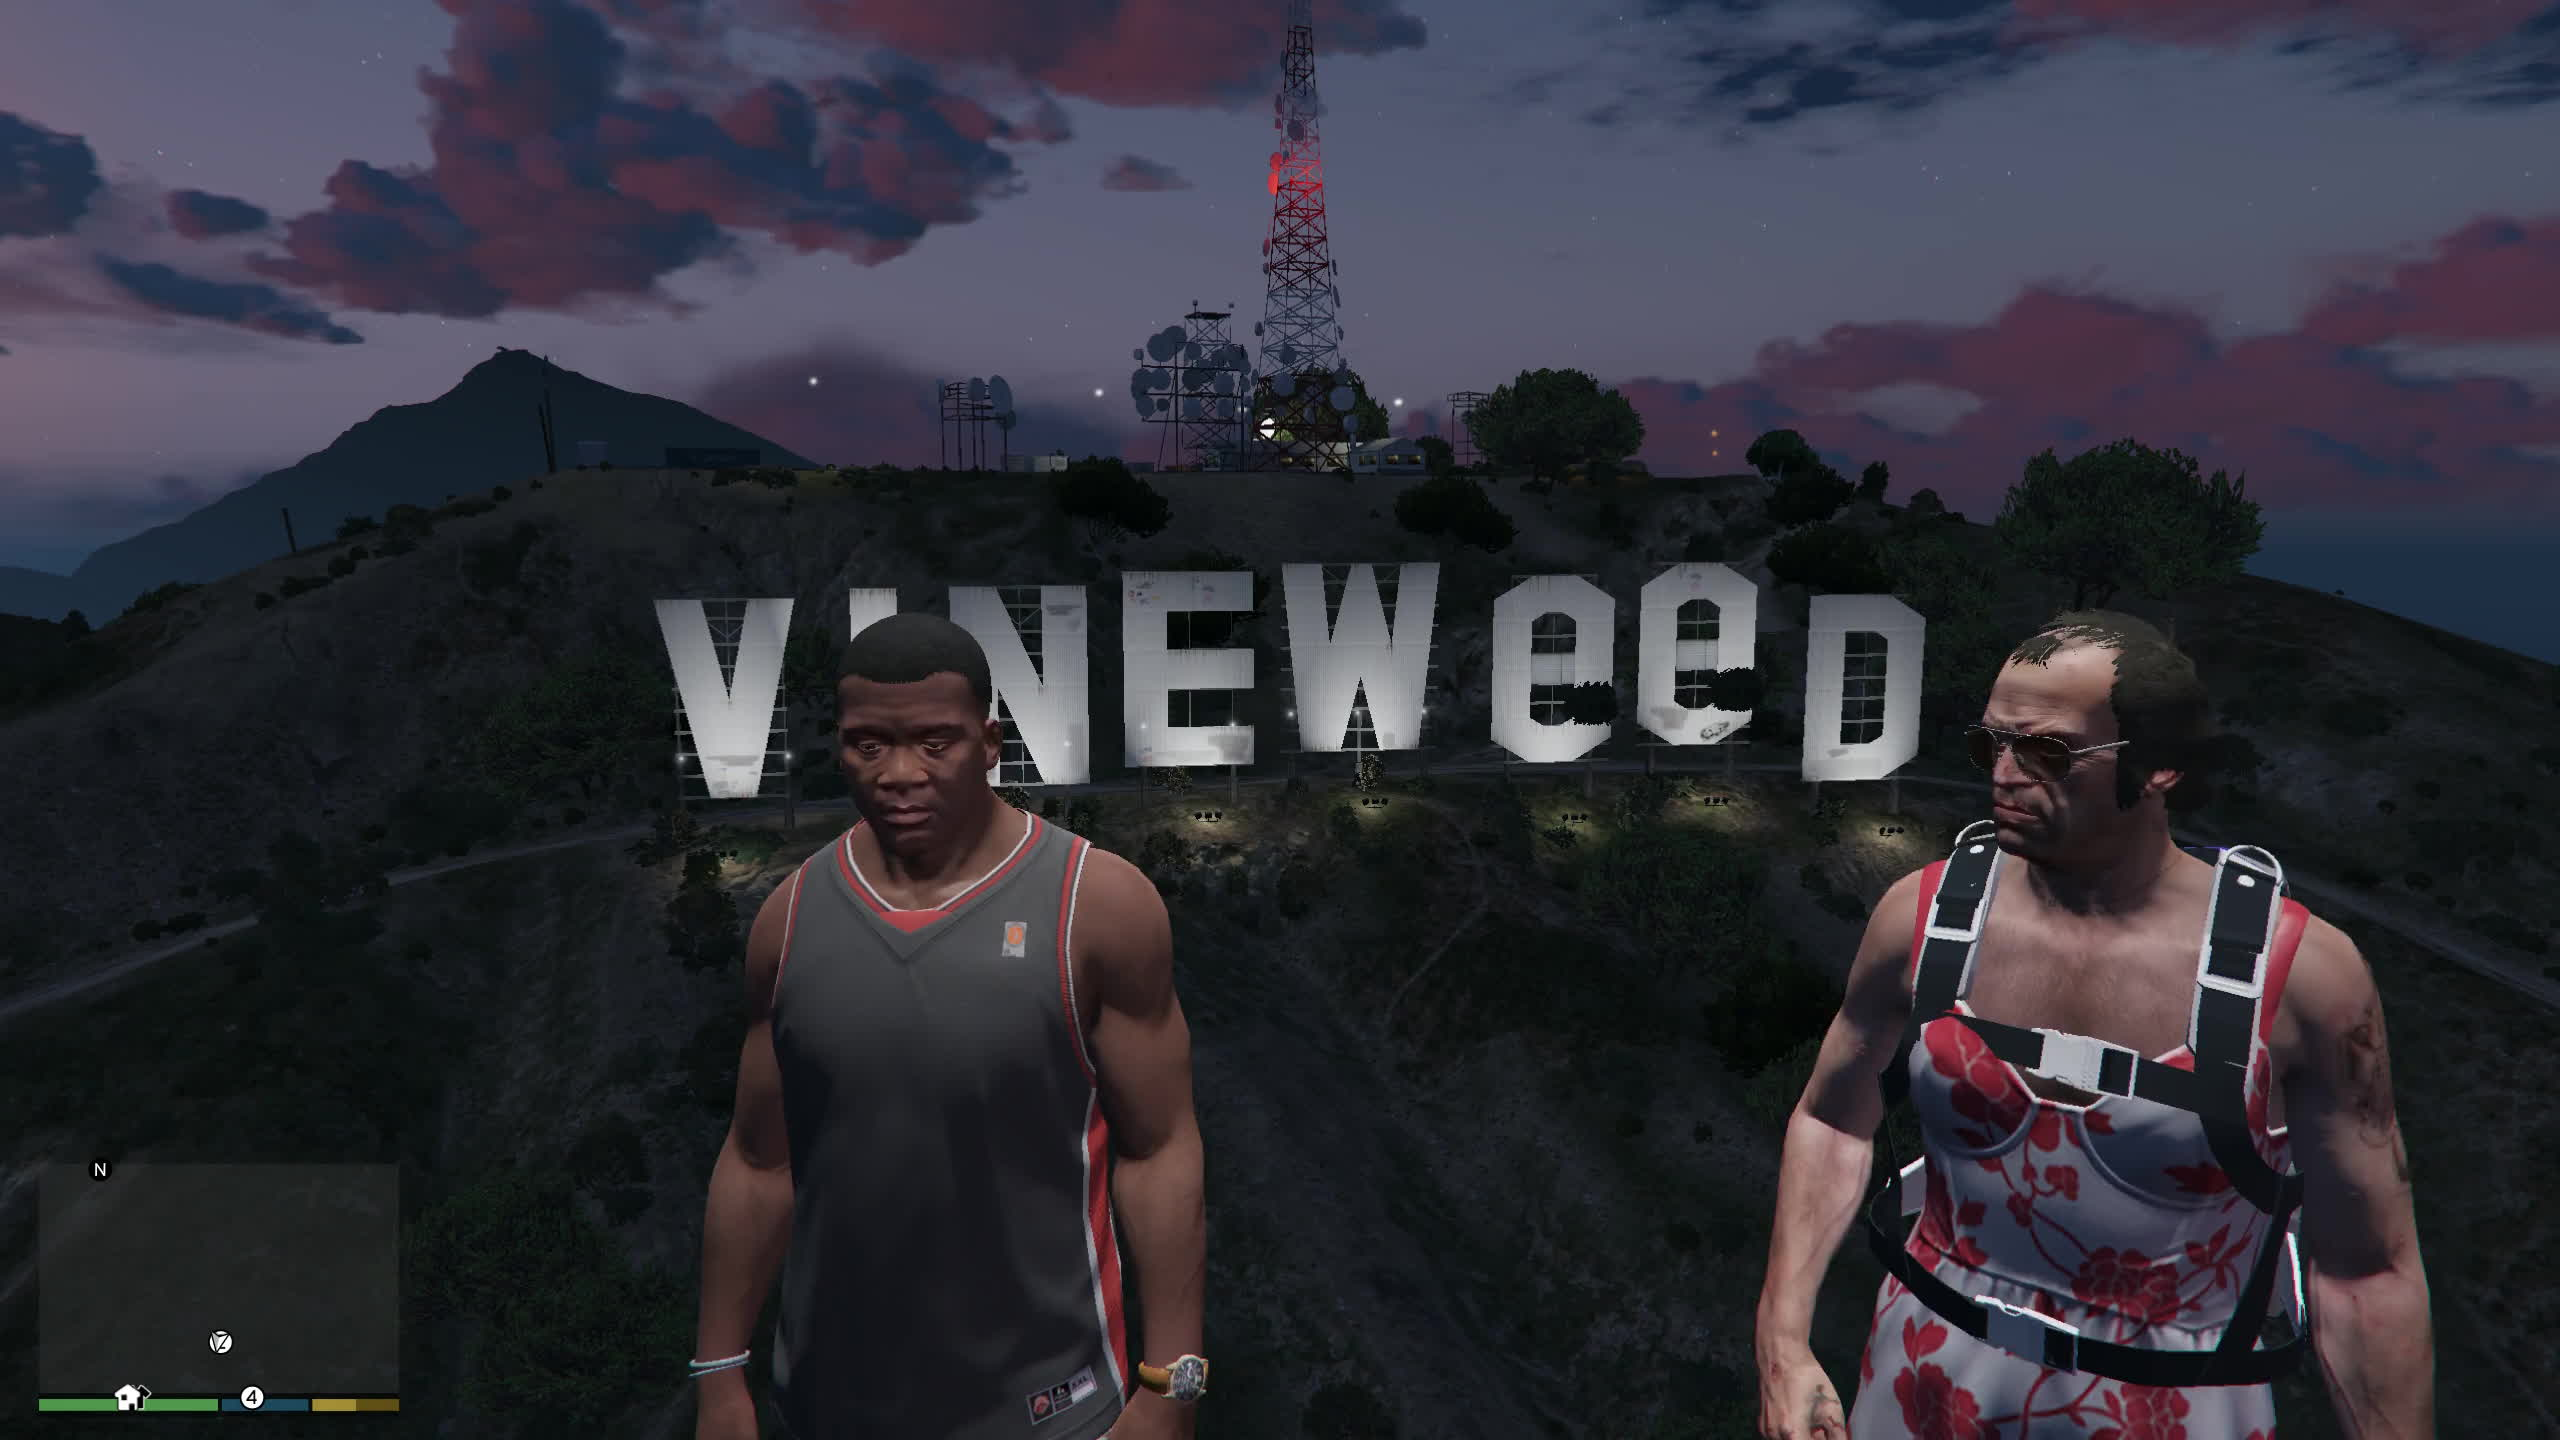 GTAgifs, gta mod vineweed holyweed gtav, Mission accomplished GIFs